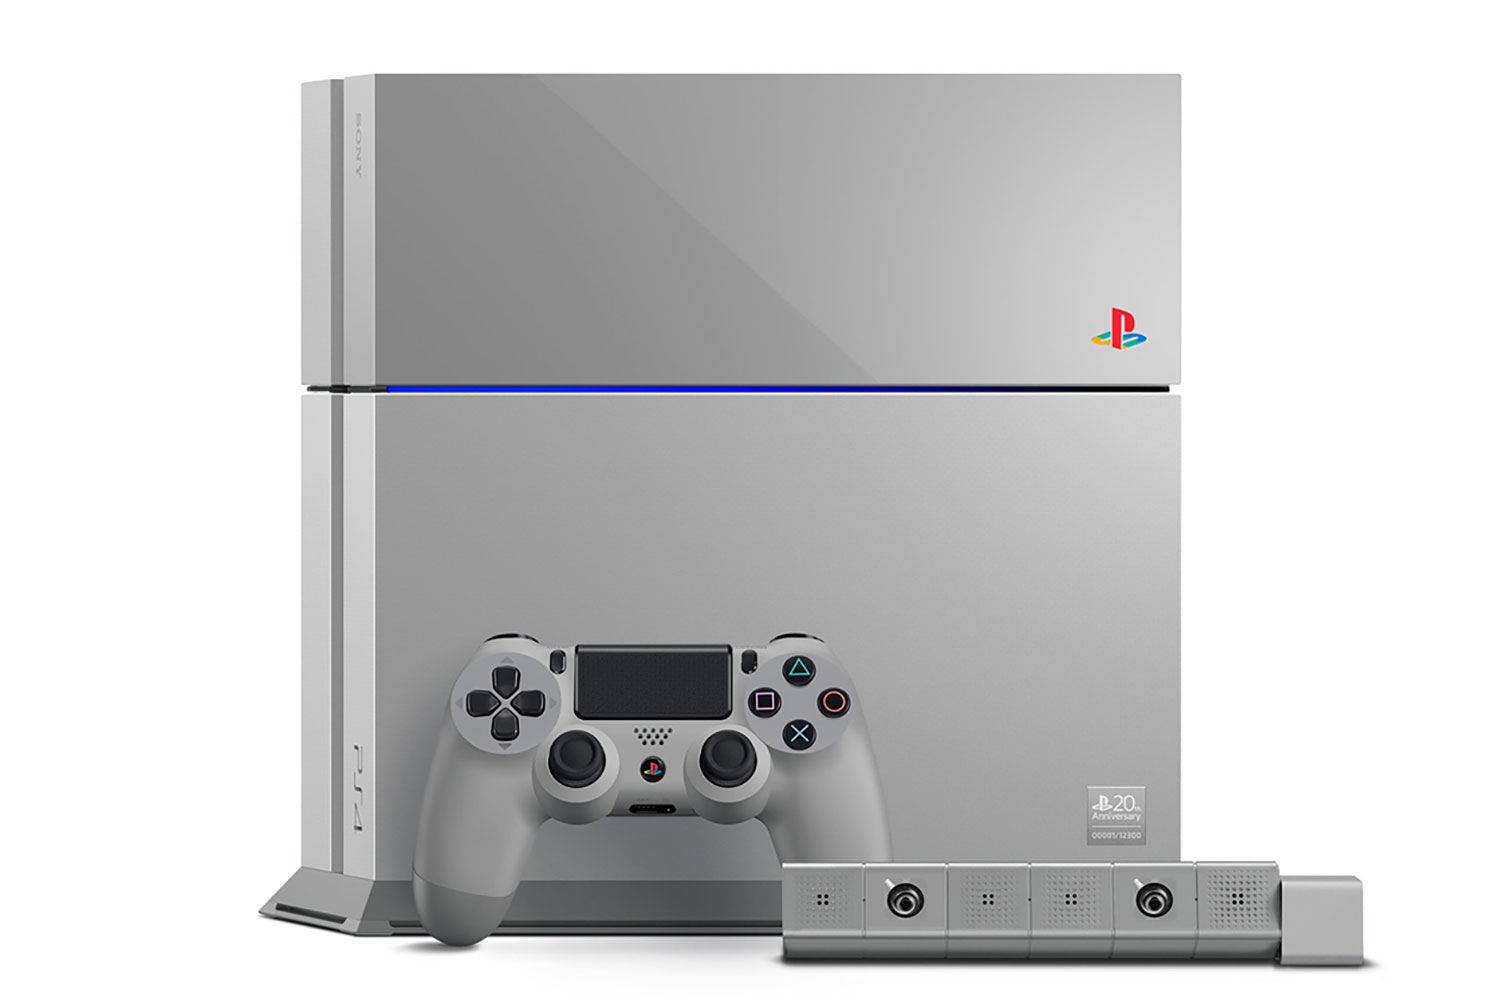 Ps3 ps4 Emulator For pc